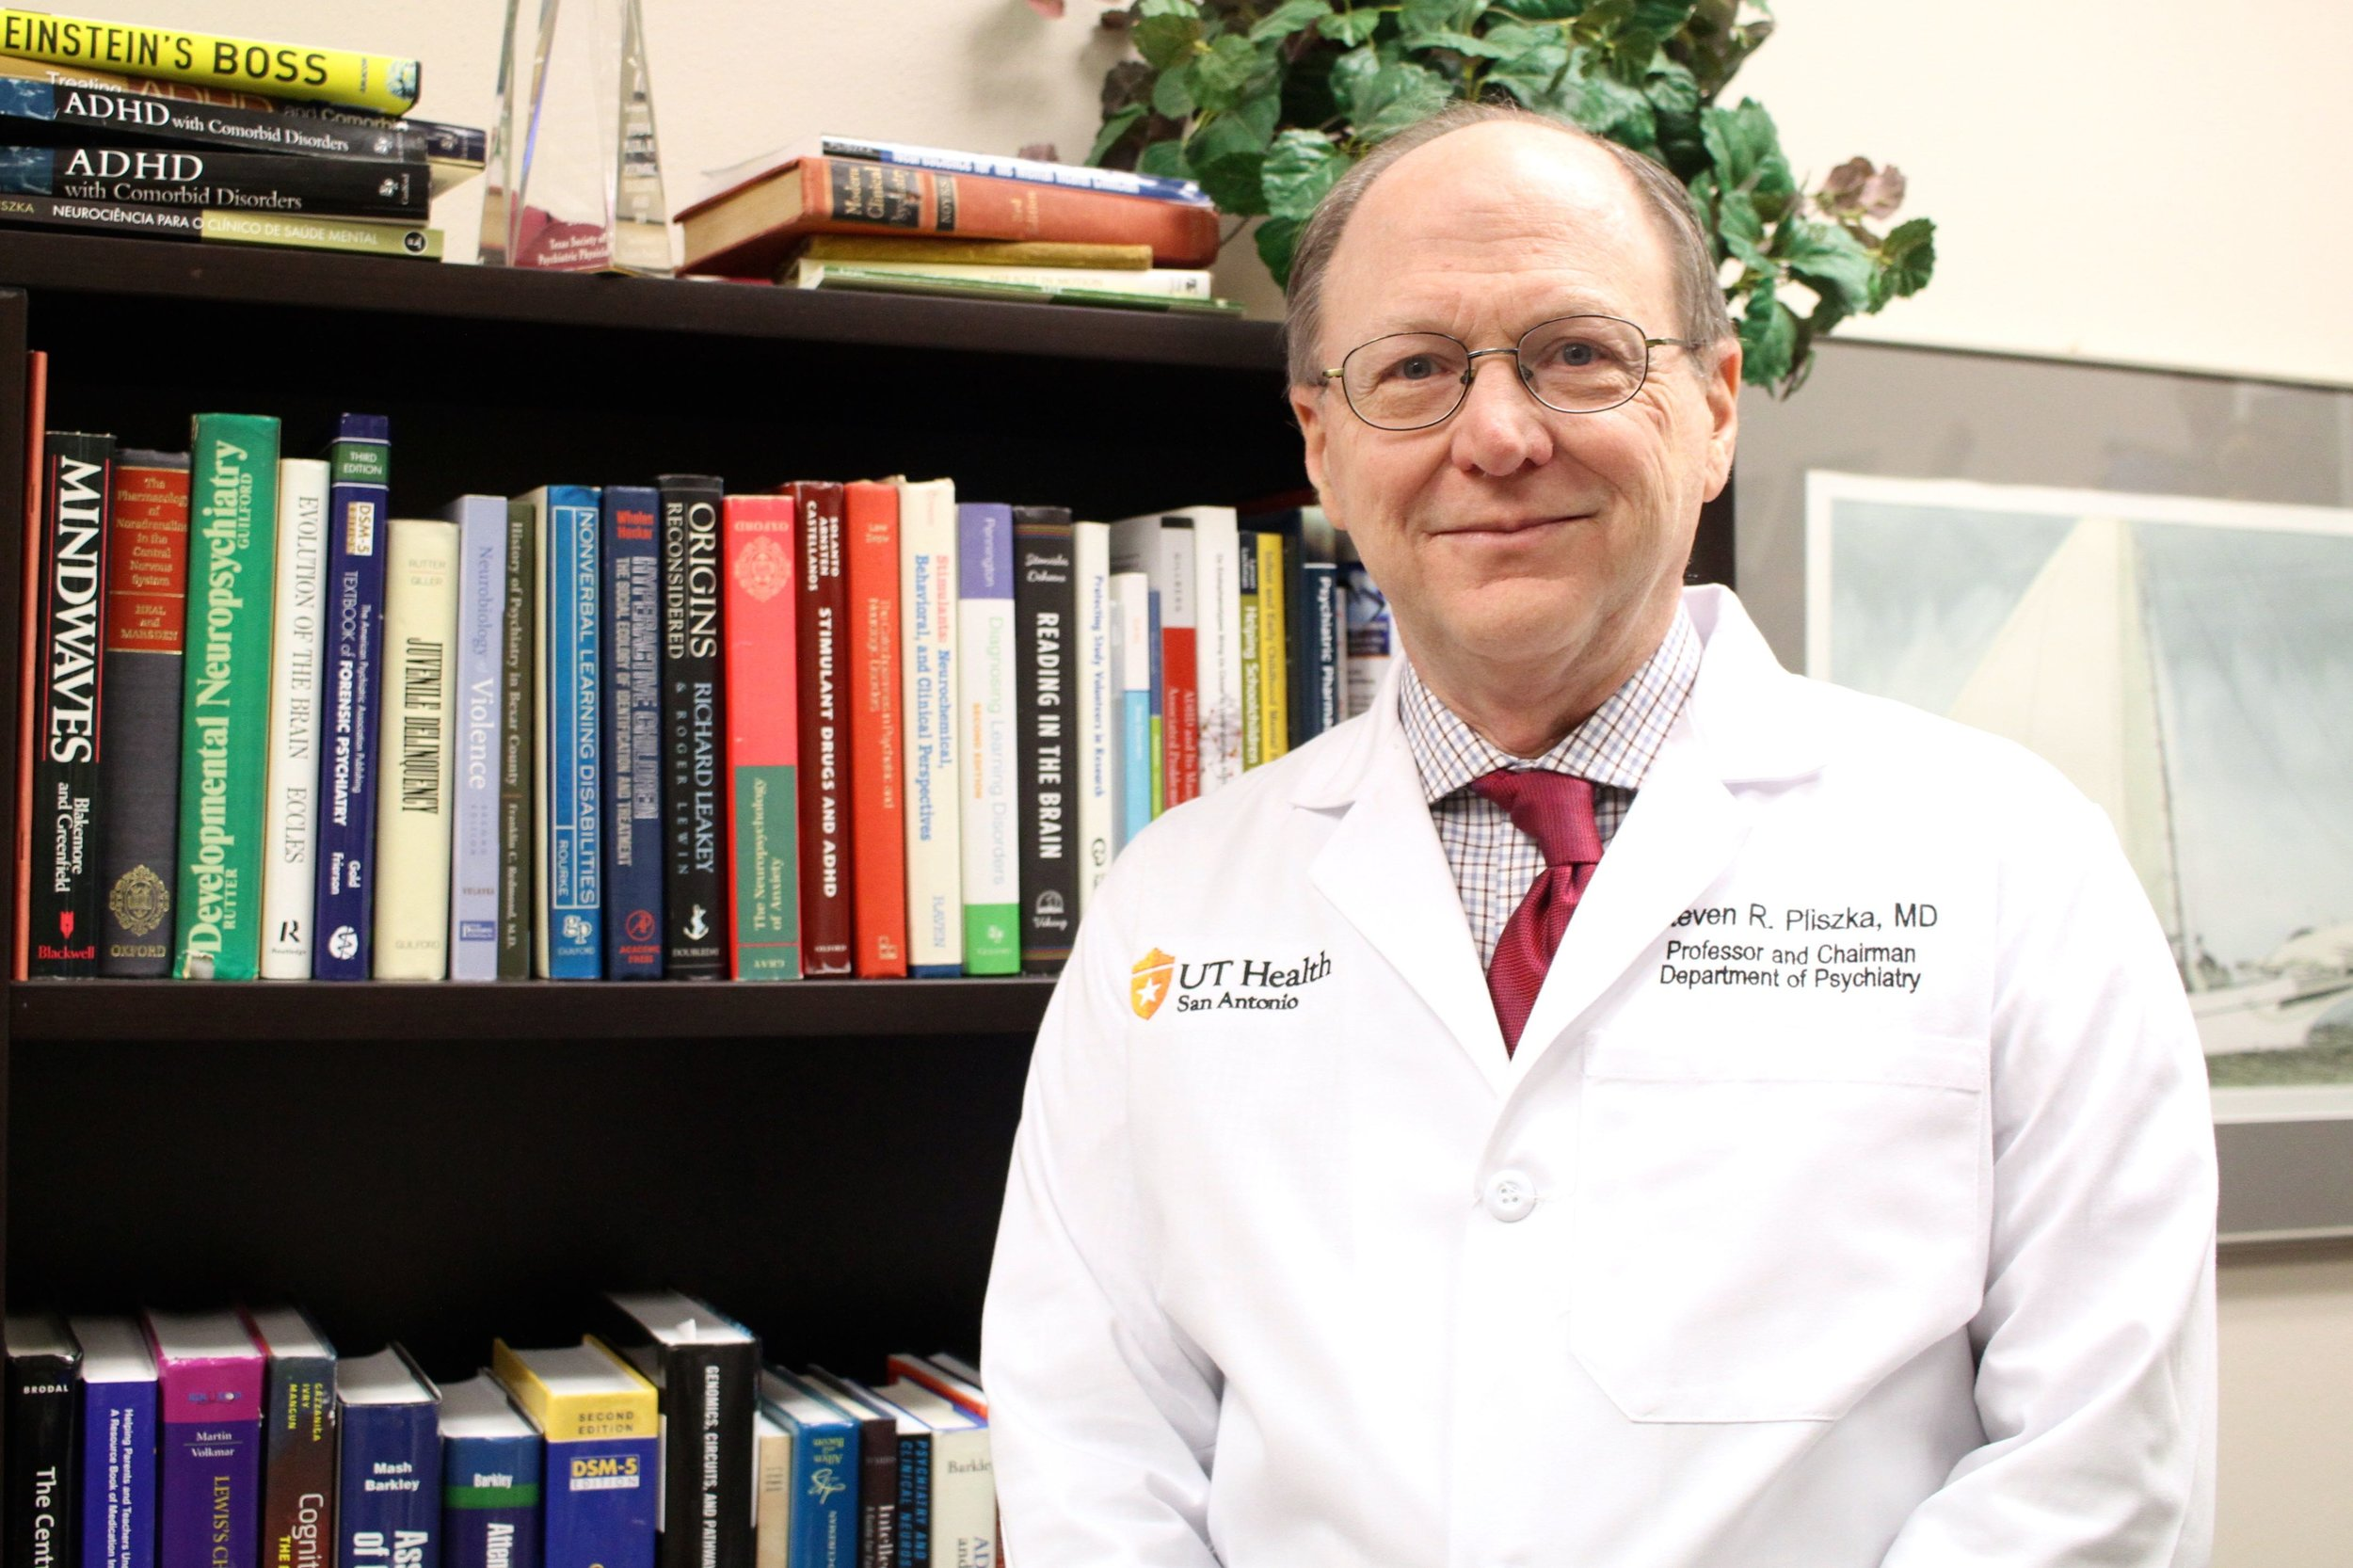 Dr. Steven Pliszka, professor and chair of the Department of Psychiatry at UT Health San Antonio